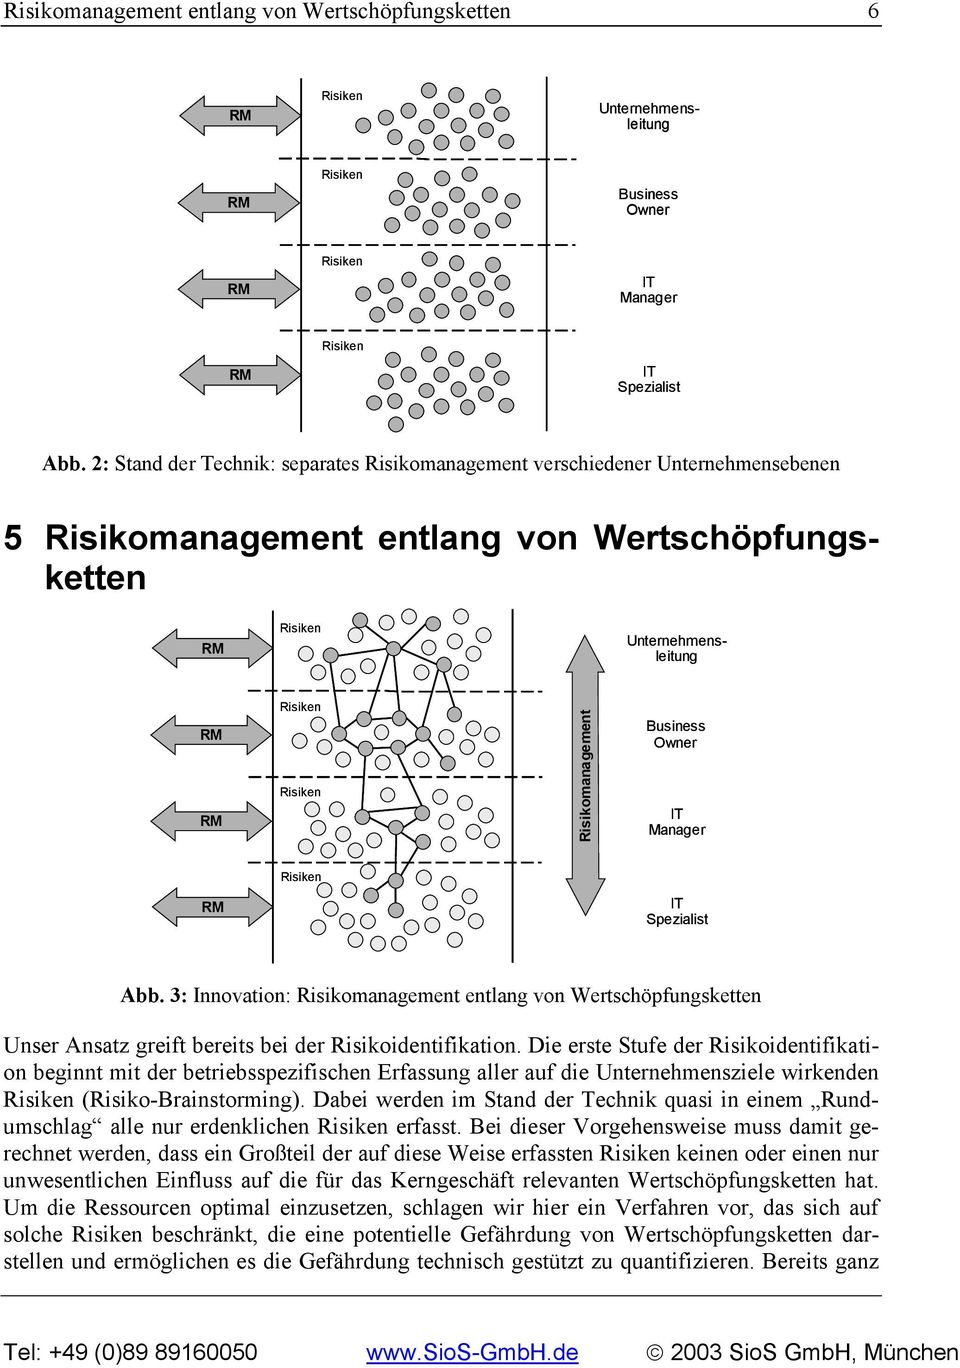 Risiken IT Manager RM Risiken IT Spezialist Abb. 3: Innovation: Risikomanagement entlang von Wertschöpfungsketten Unser Ansatz greift bereits bei der Risikoidentifikation.